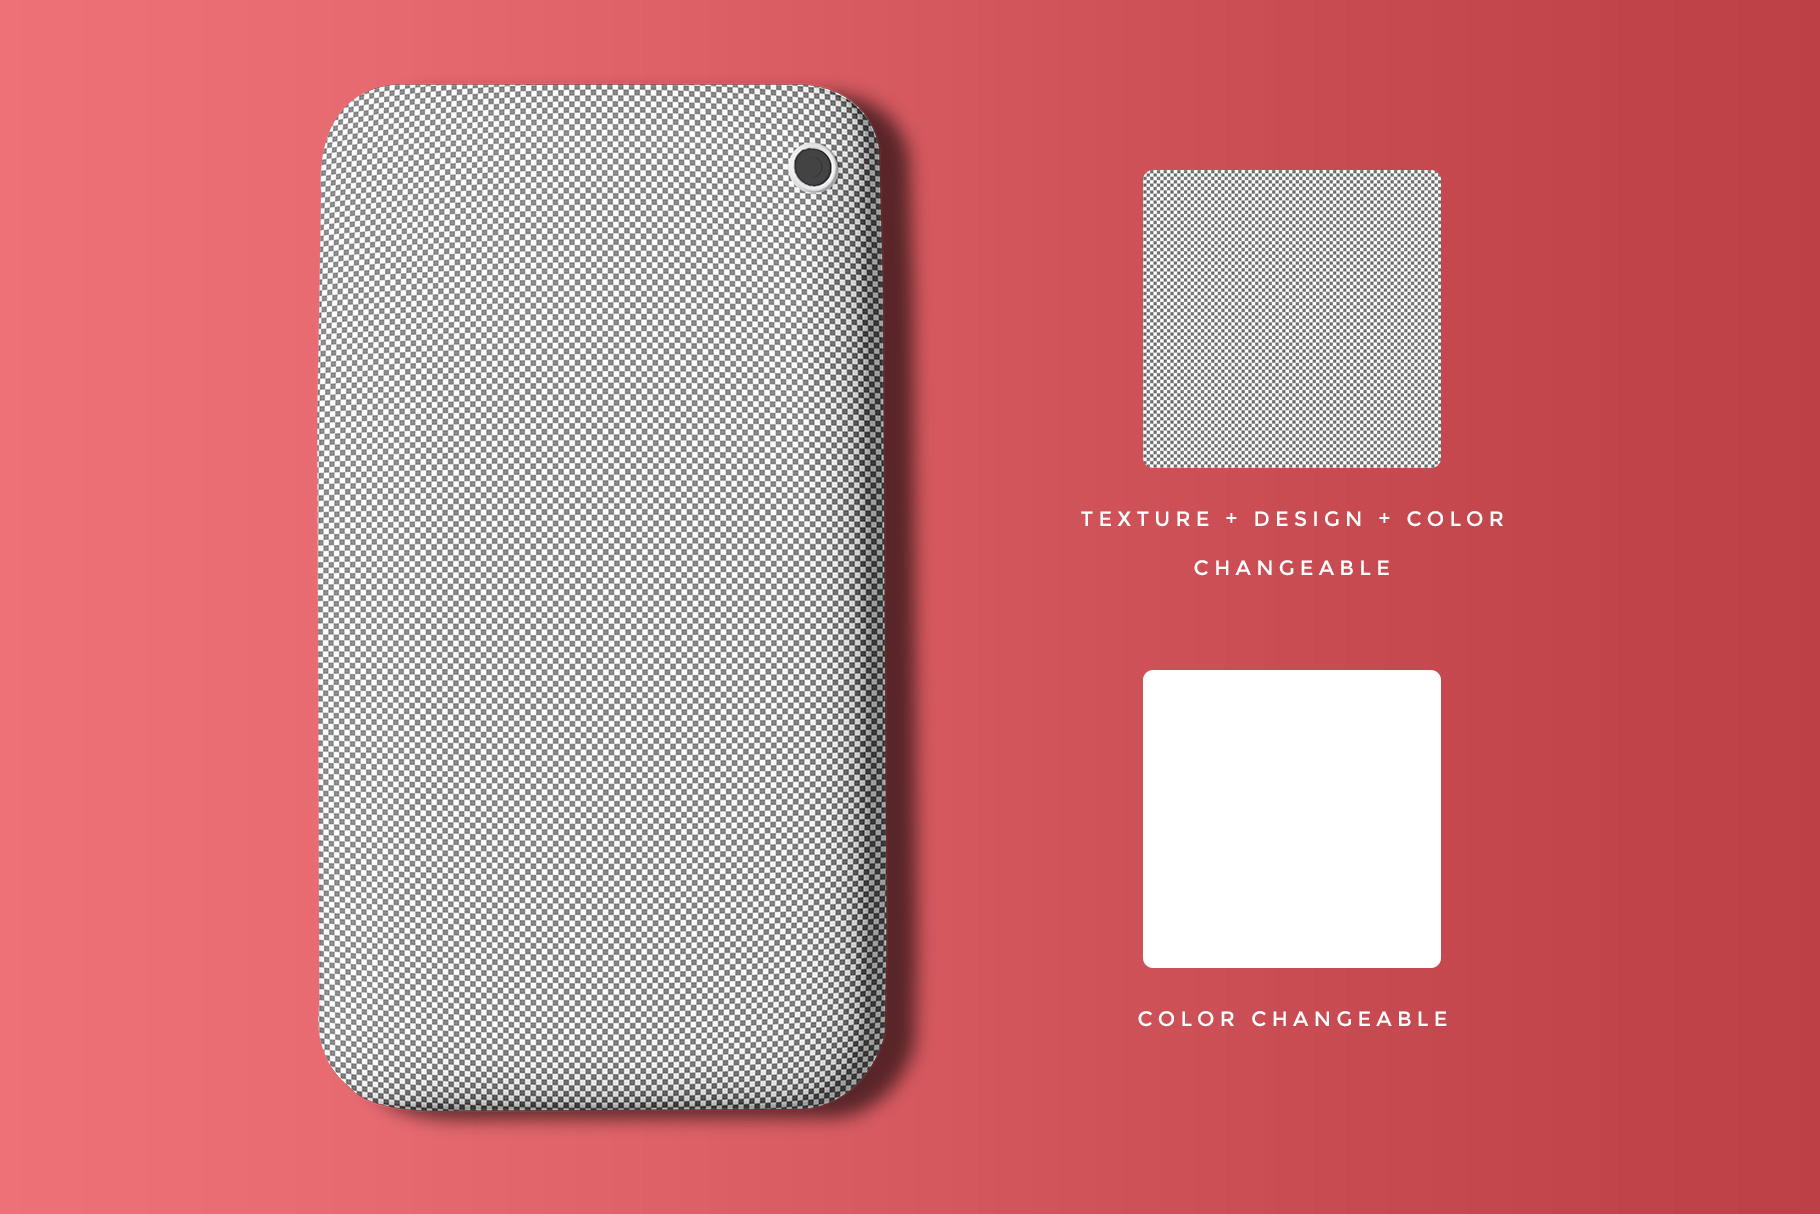 editability of the top view smart phone back cover mockup